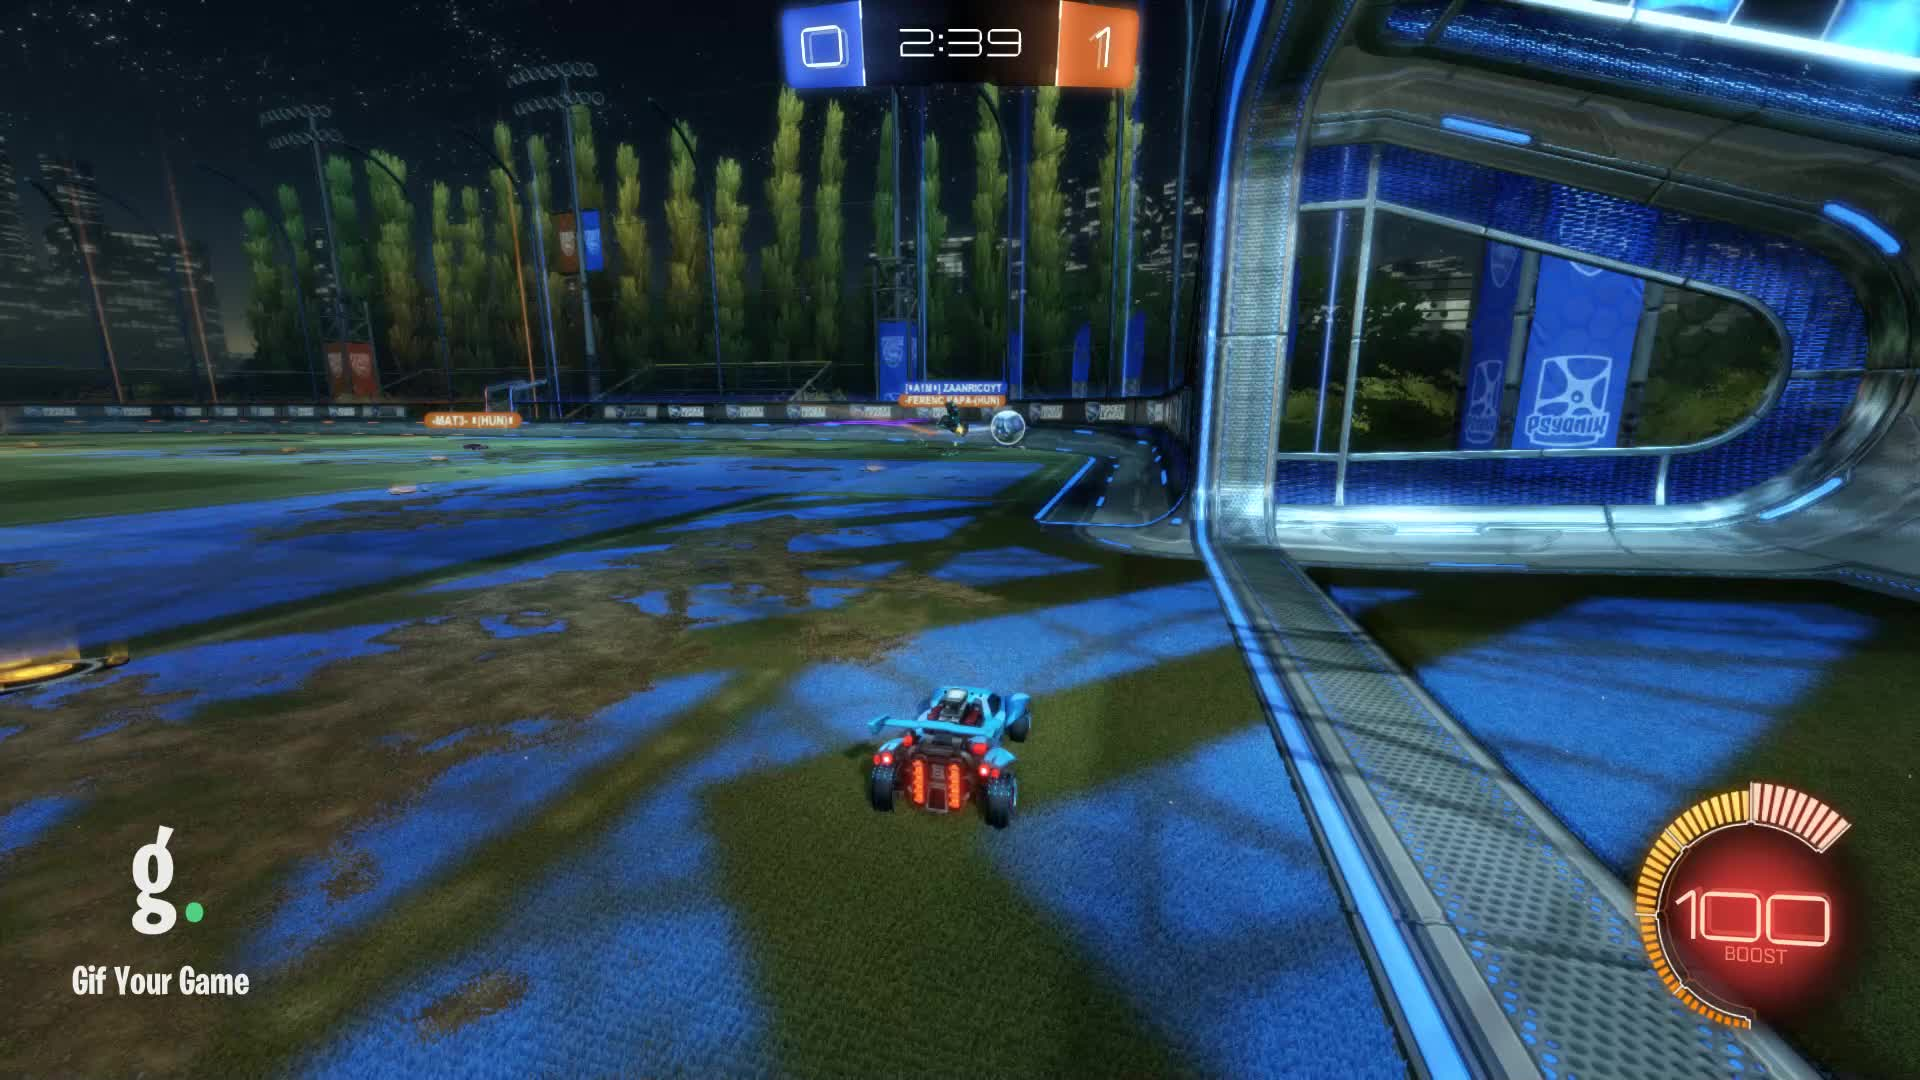 Assist, Gif Your Game, GifYourGame, Rocket League, RocketLeague, Timper [NL], Assist 1: Timper [NL] GIFs